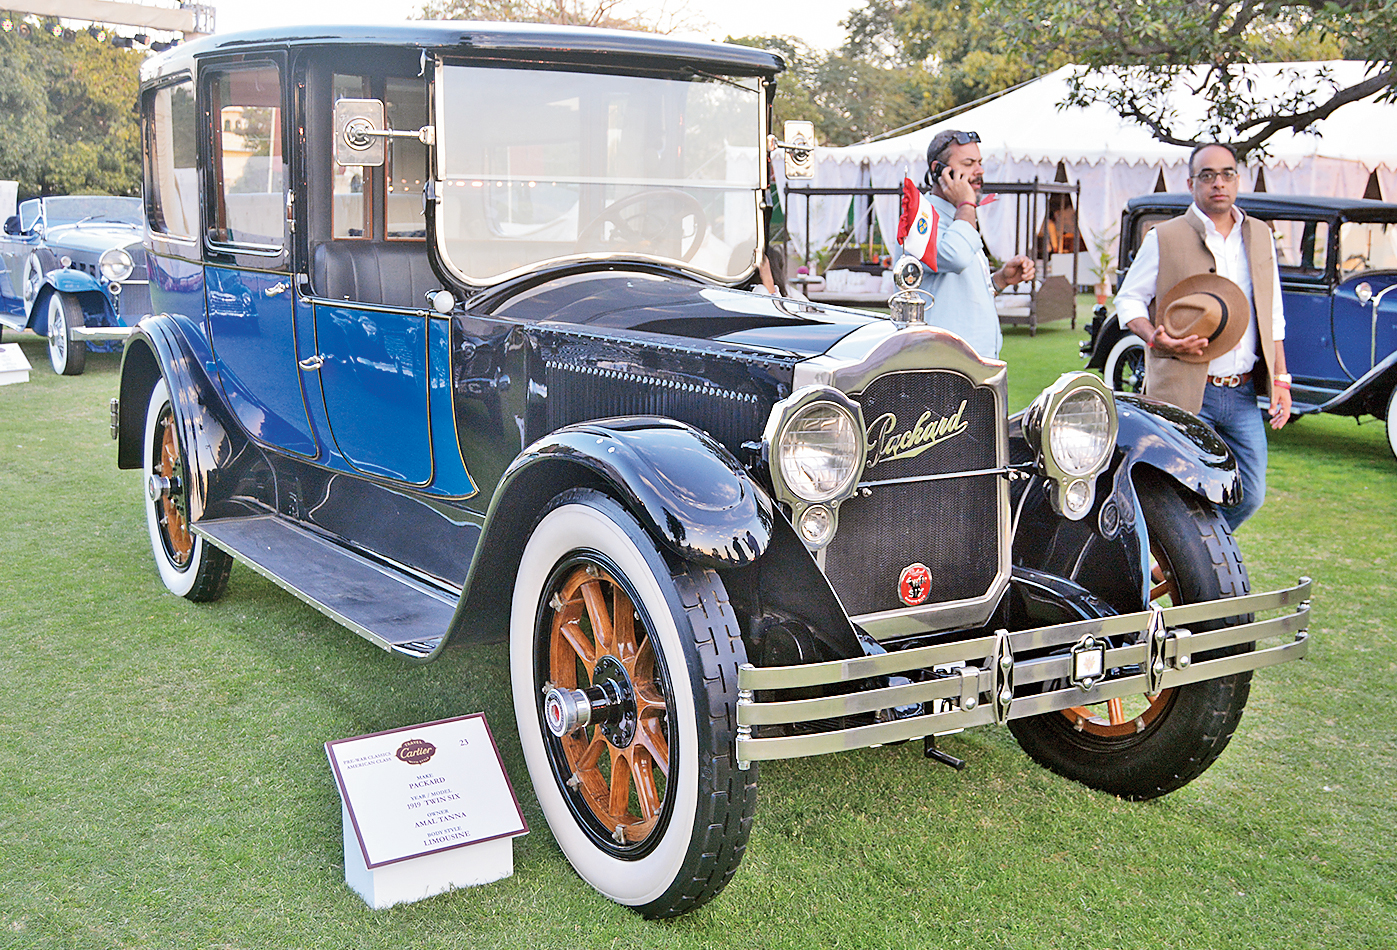 This very upright and stately 1919 Packard Twin Six was once the official car of the governor of Pondicherry when it was still a French territory. The French government's emblems can still be seen on the front bumper and the inside door handles.